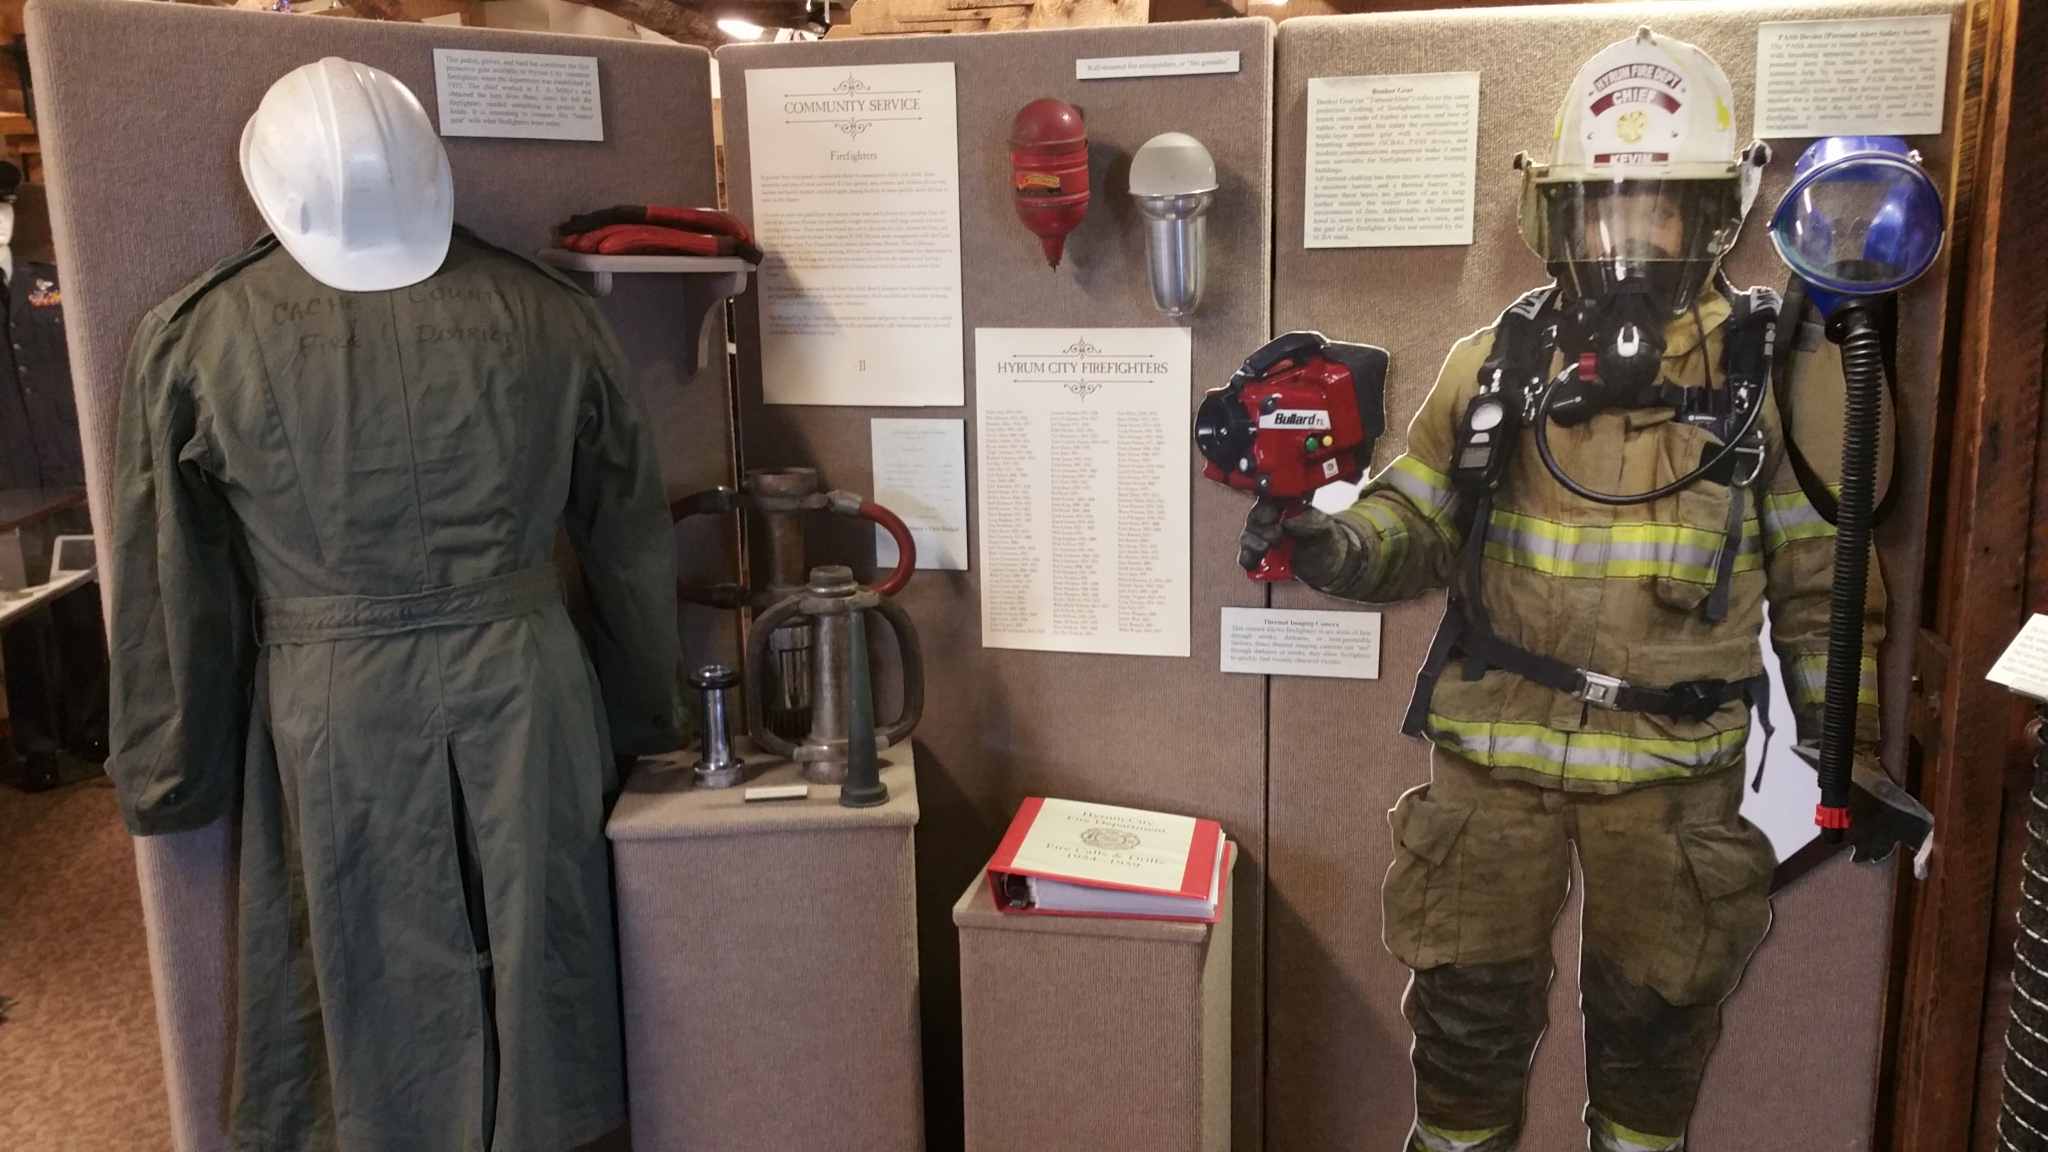 Firefighters Exhibit